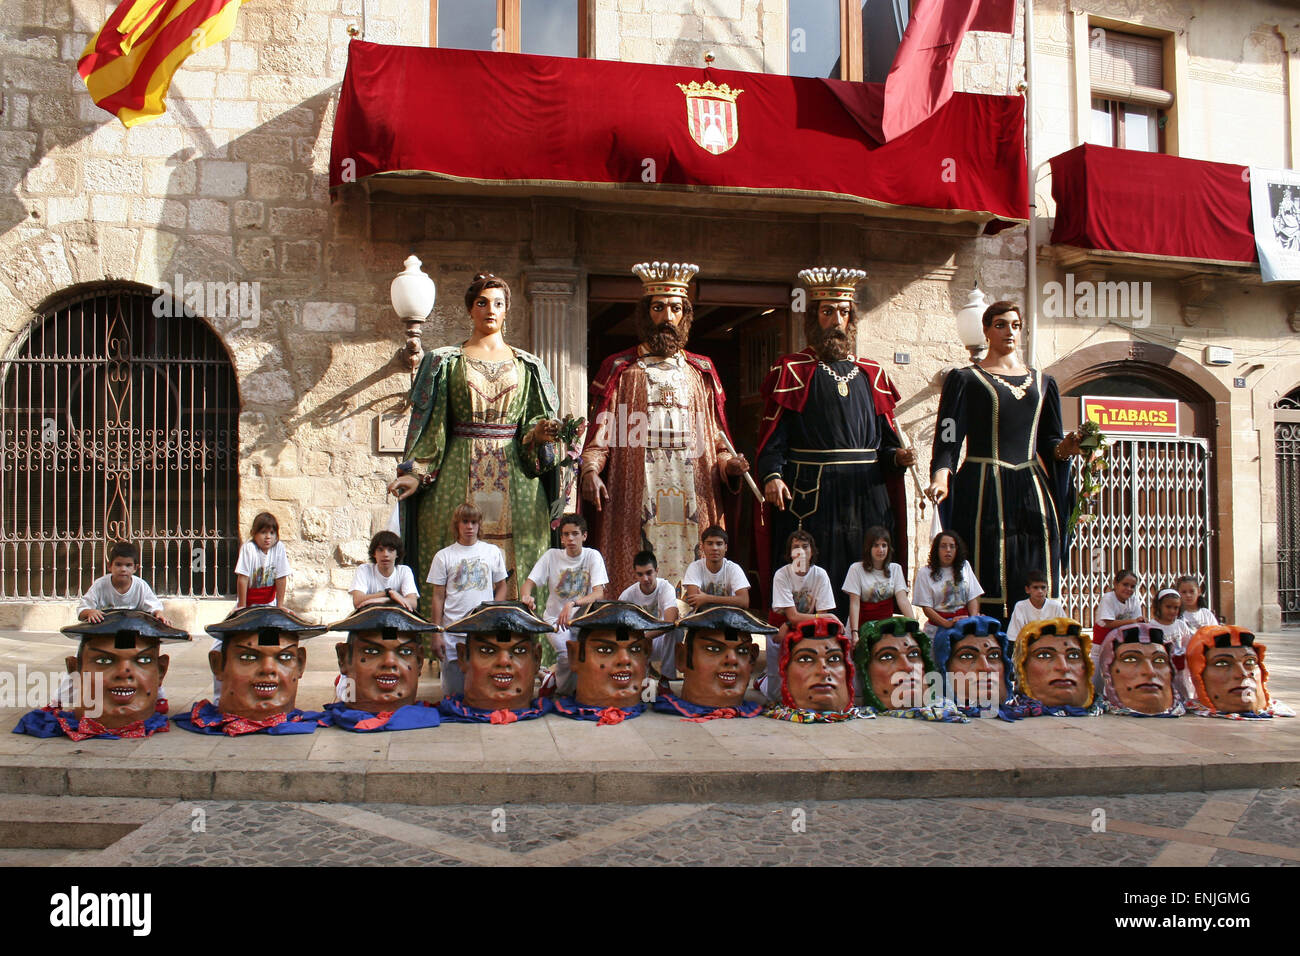 Giants,large-headed dwarfs,donkeys,eagles and dragons dancing at the popular festivities in the medieval village Stock Photo